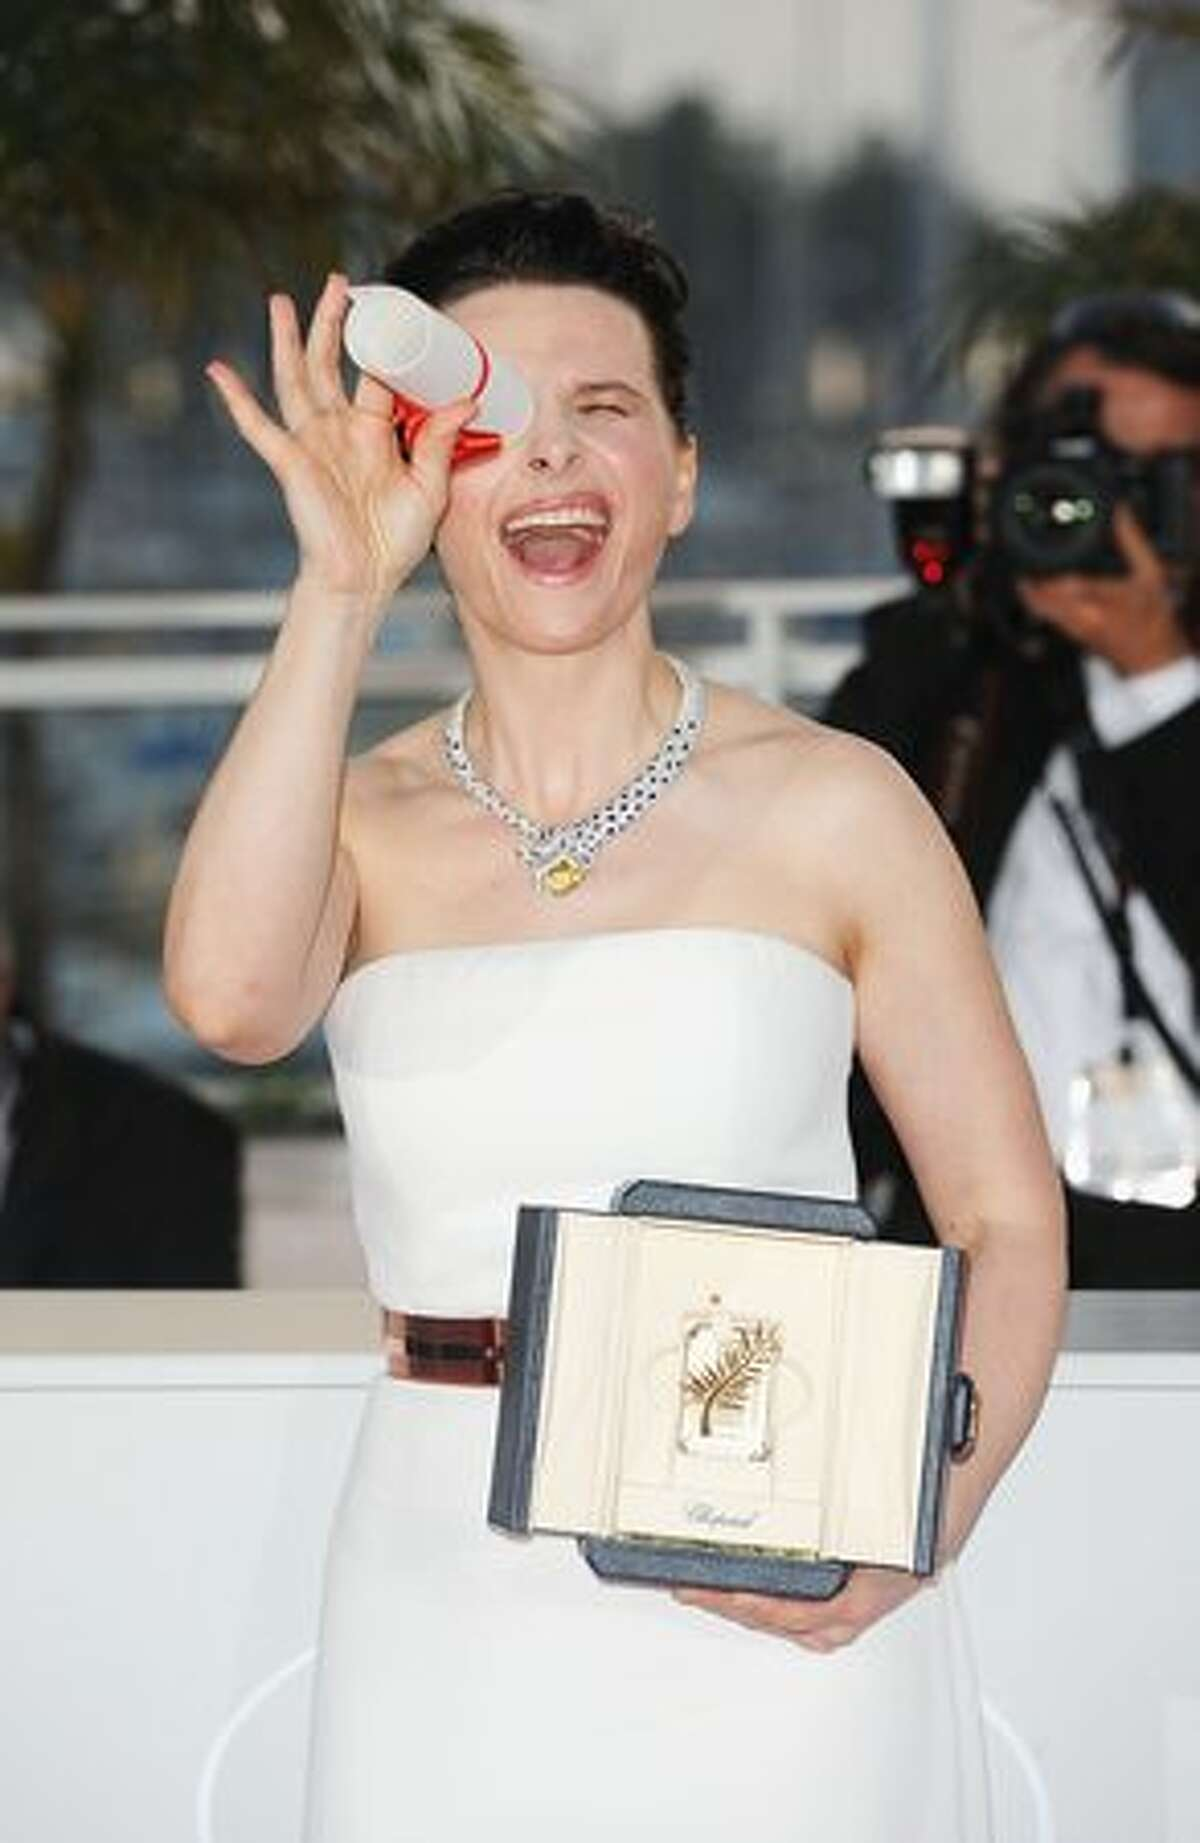 Actress Juliette Binoche poses with her Best Actress award for her role in